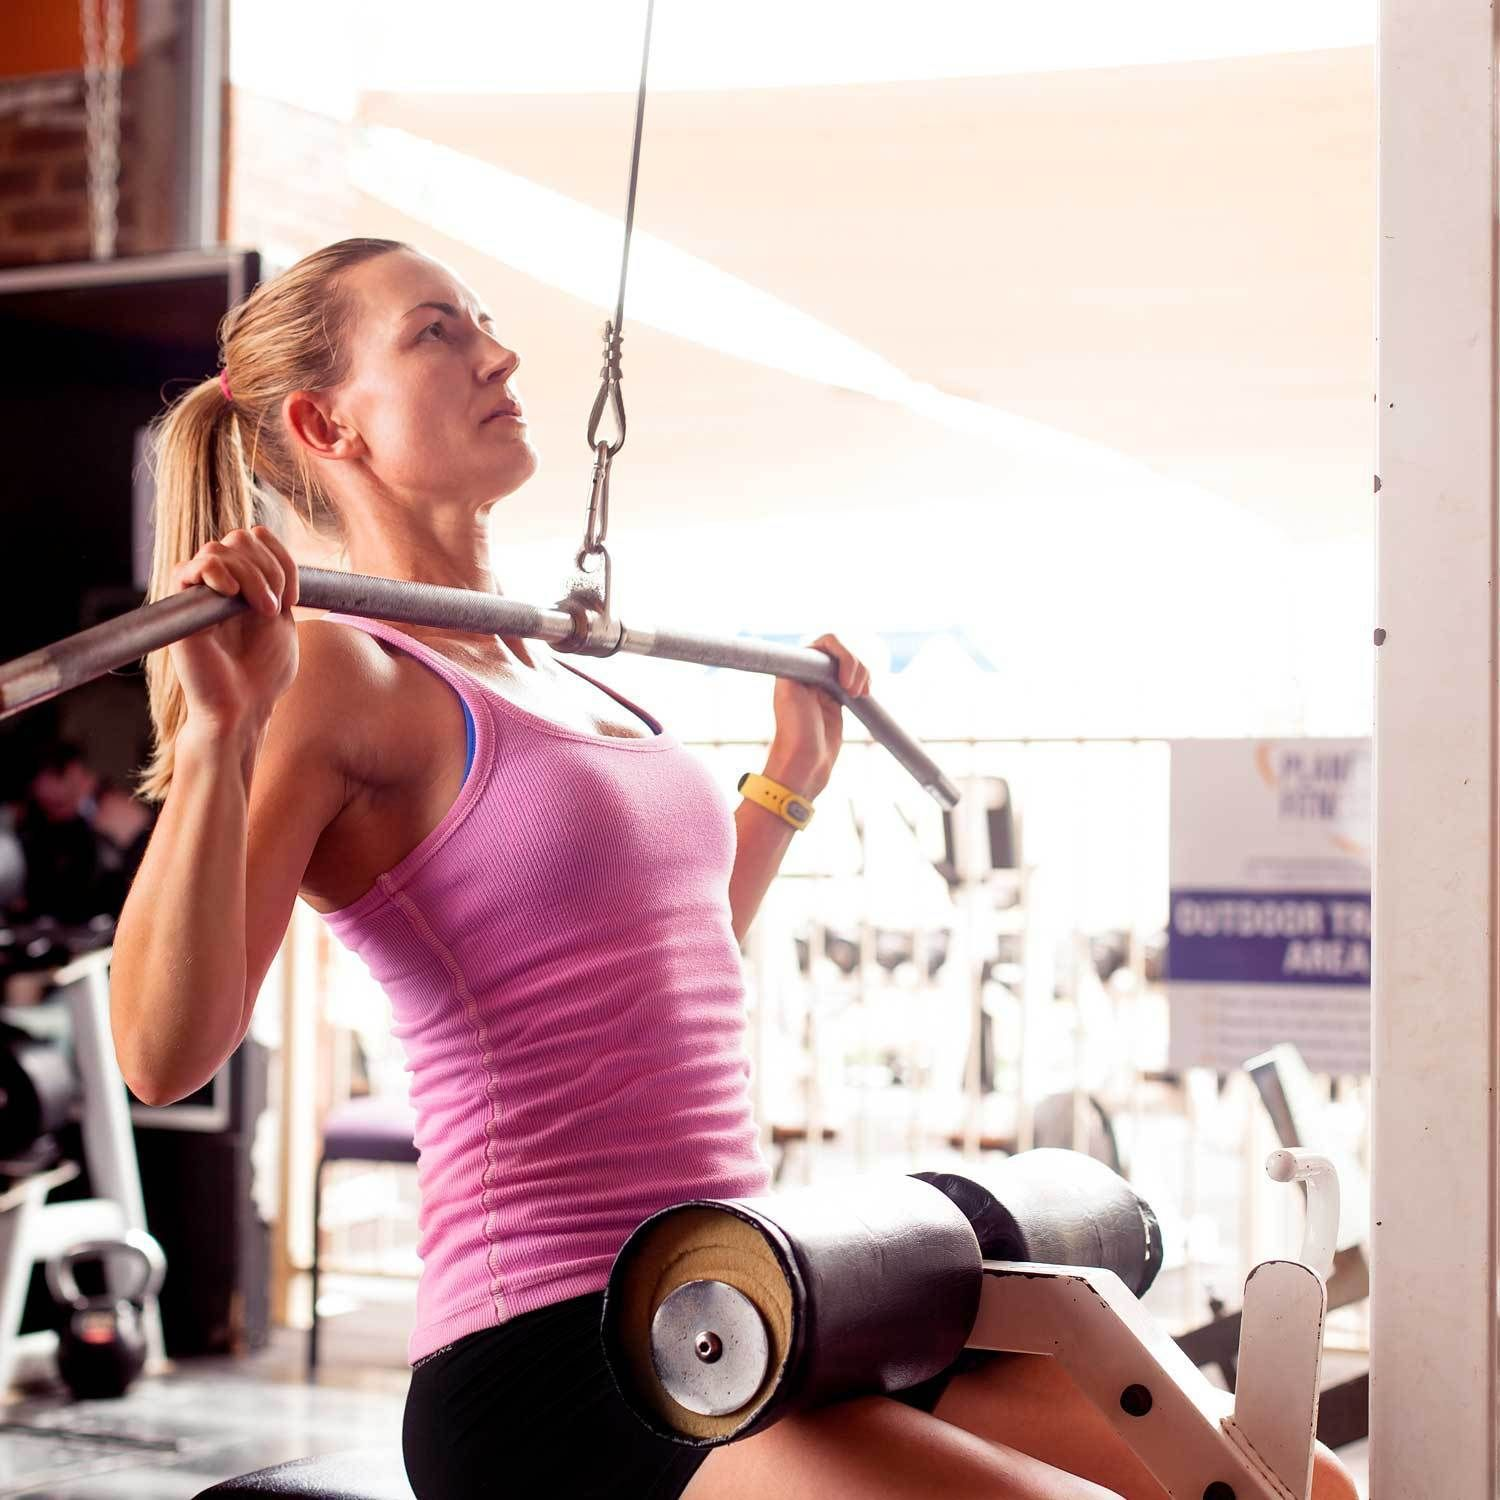 7 gym machines worth using fitness workout